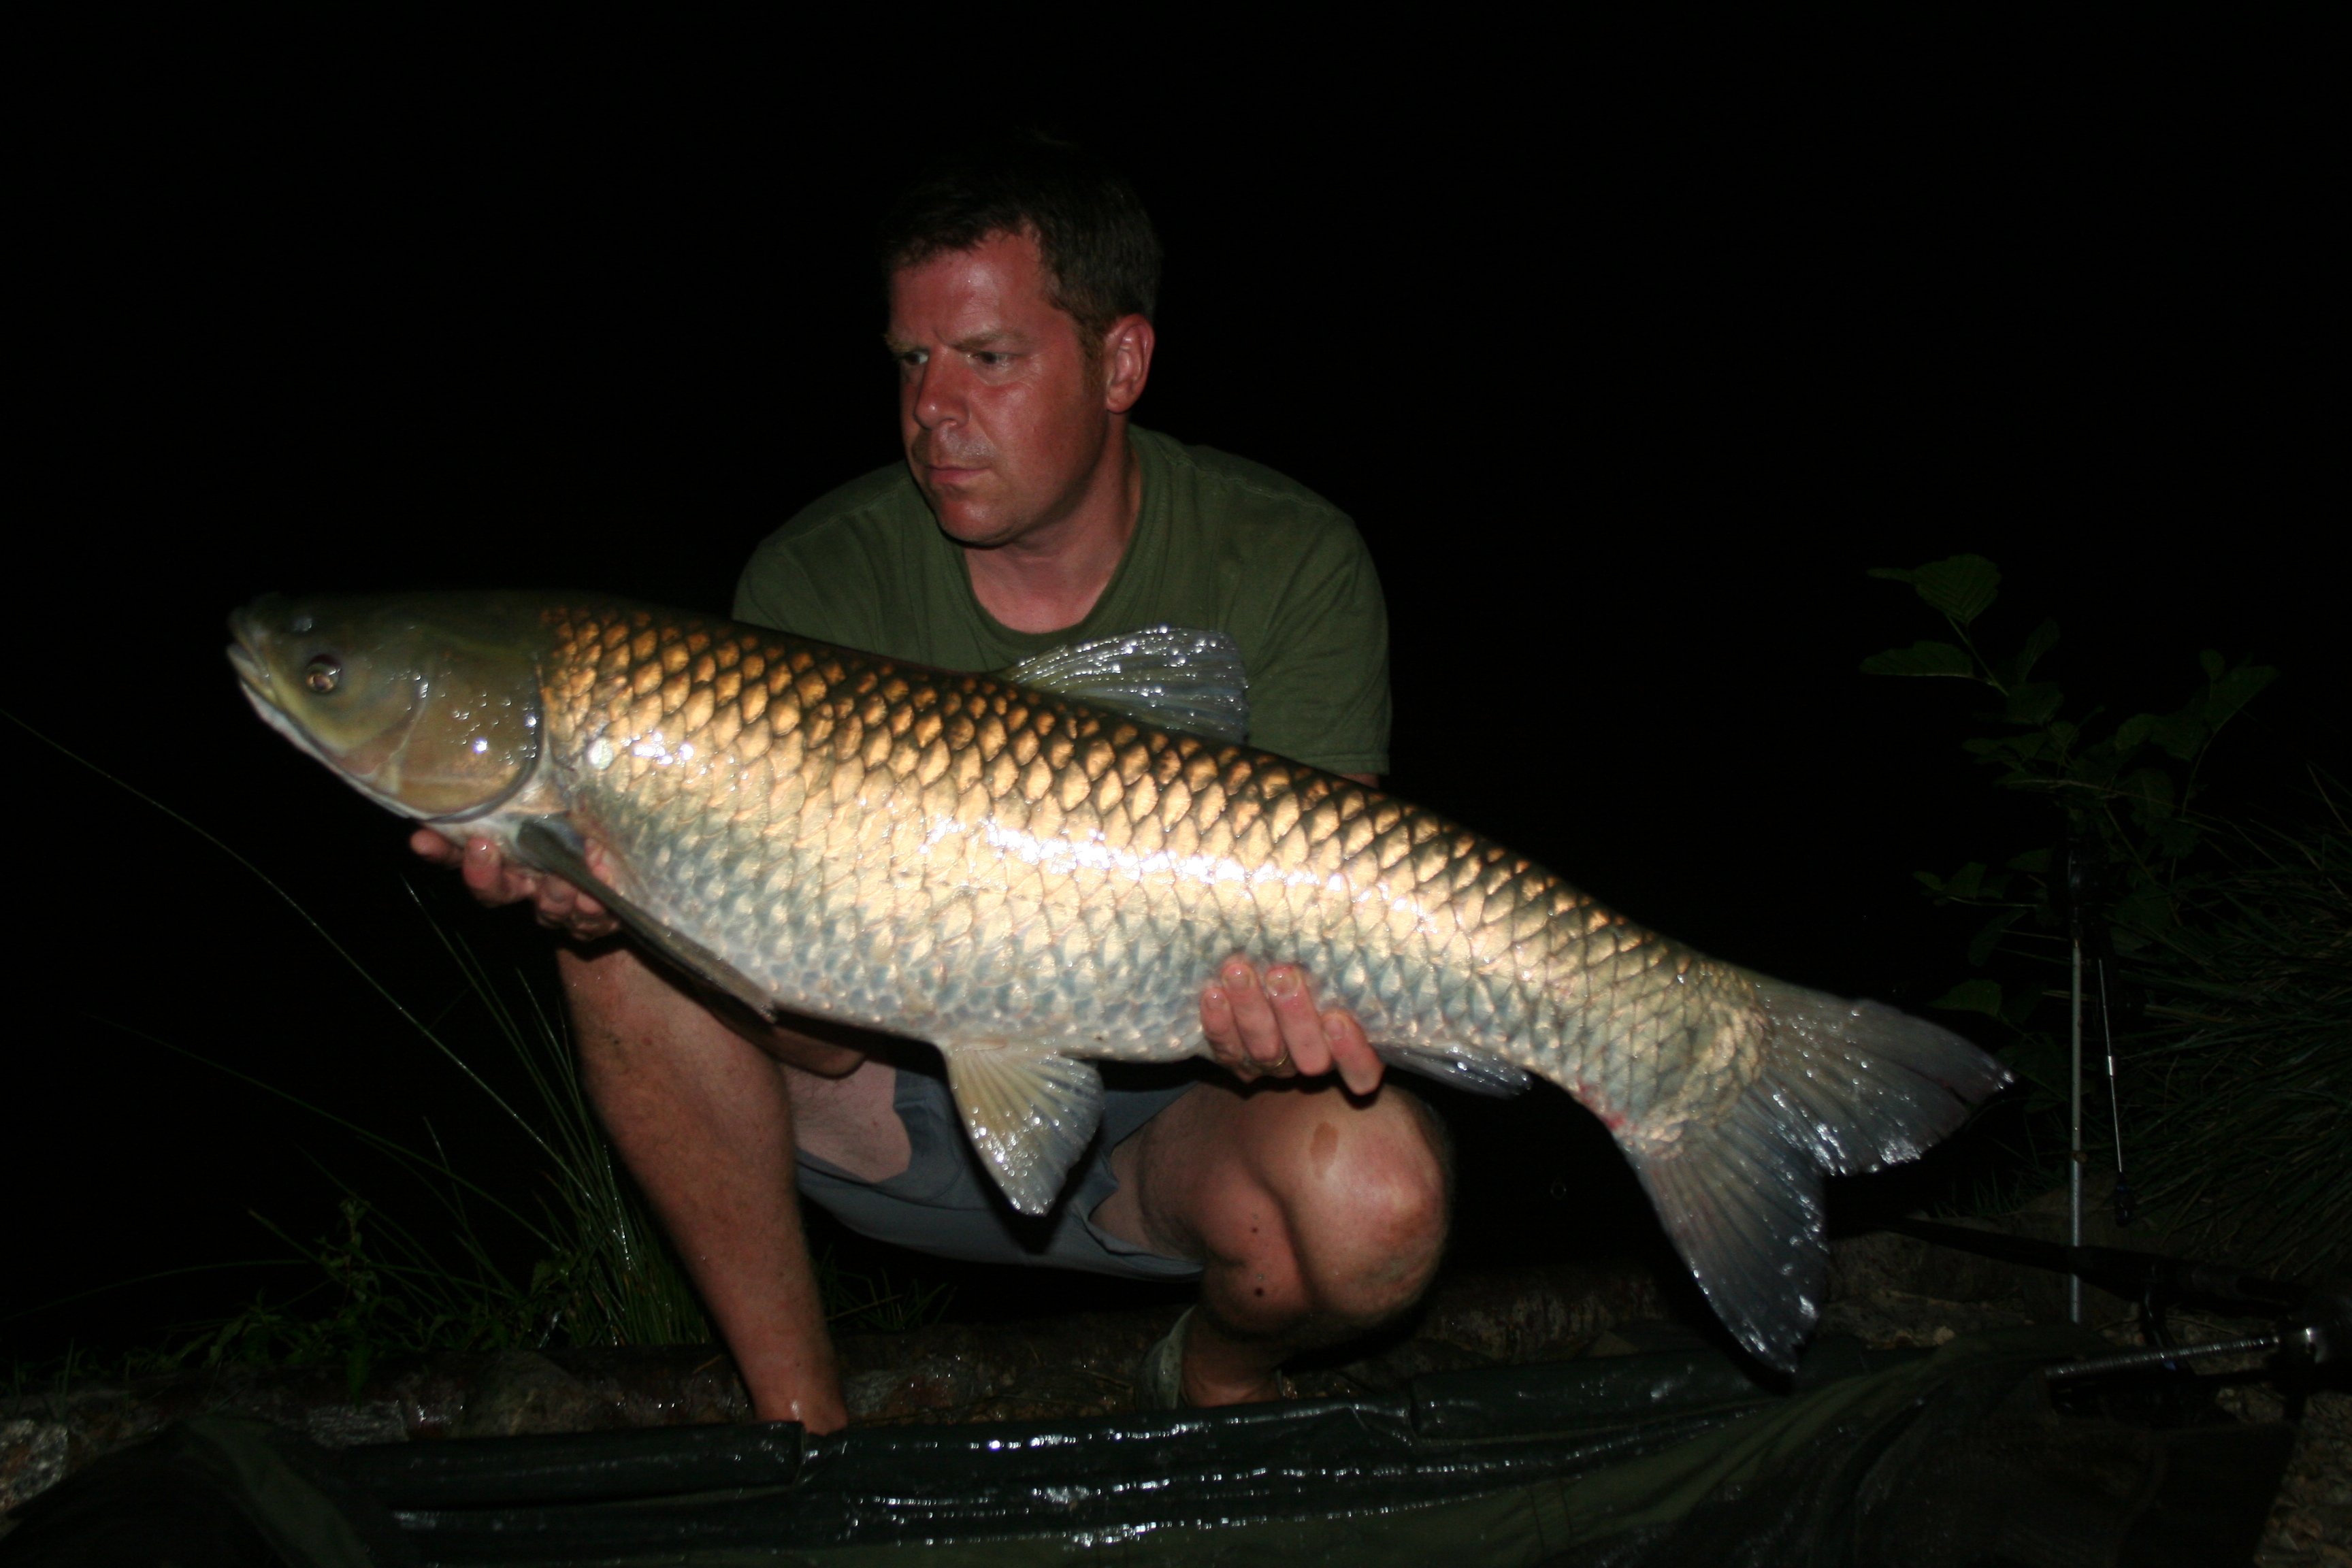 https://www.puyravaudcarp.com/wp-content/uploads/2016/08/13728.jpg